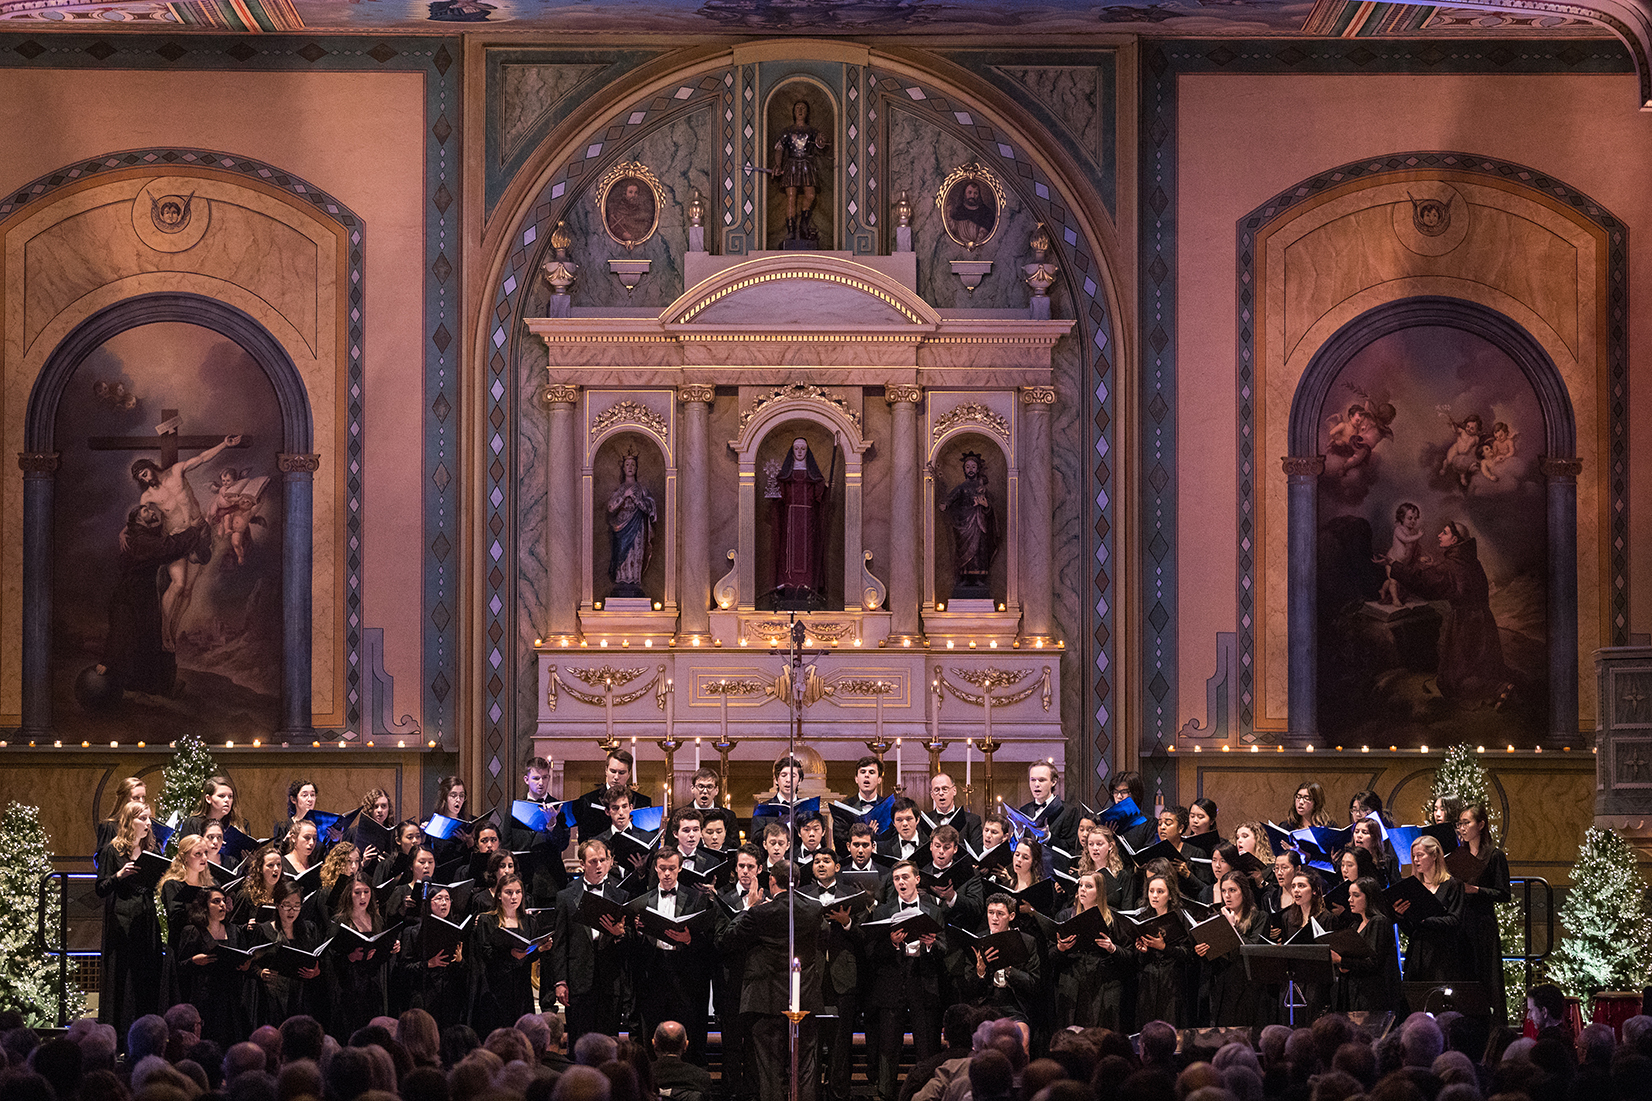 Santa Clara University's Concert Choir and Chamber Singers performed during the annual Festival of Lights Concert at the Mission Santa Clara on December 1 (photo byStan Olszewski of SOSKIphoto)